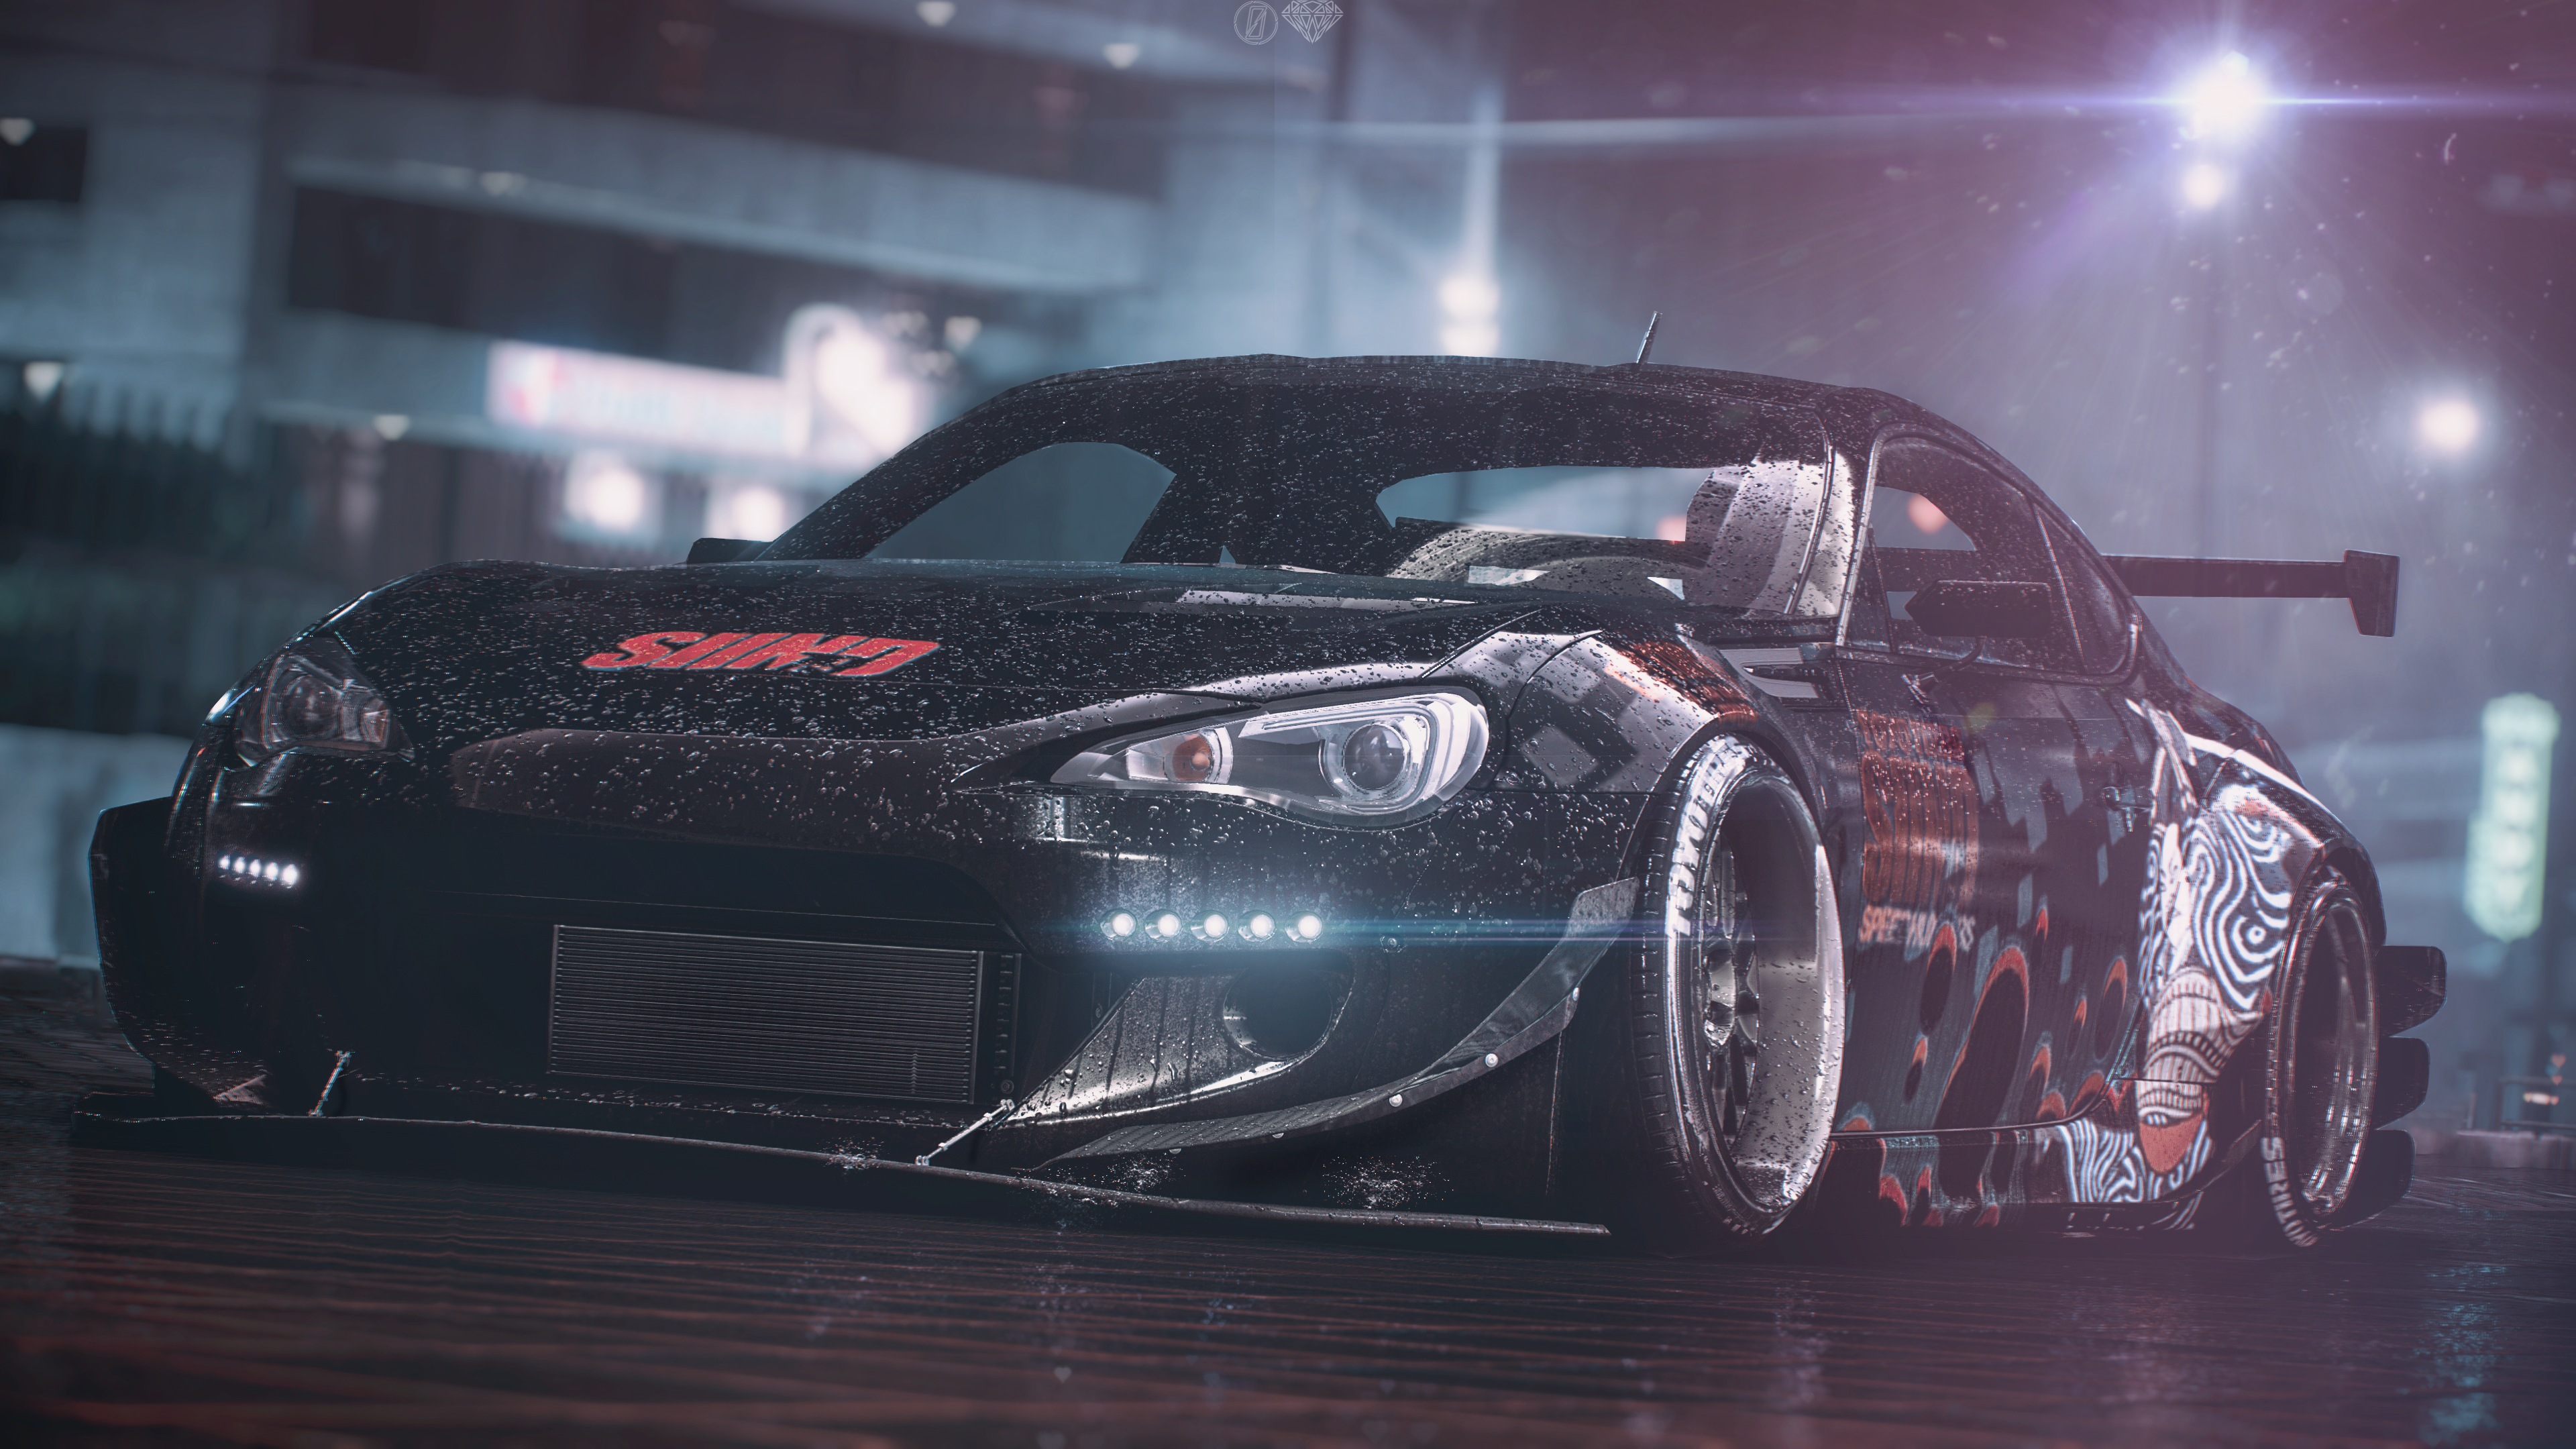 Subaru Brz Rocket Bunny Wallpaper Posted By Christopher Peltier